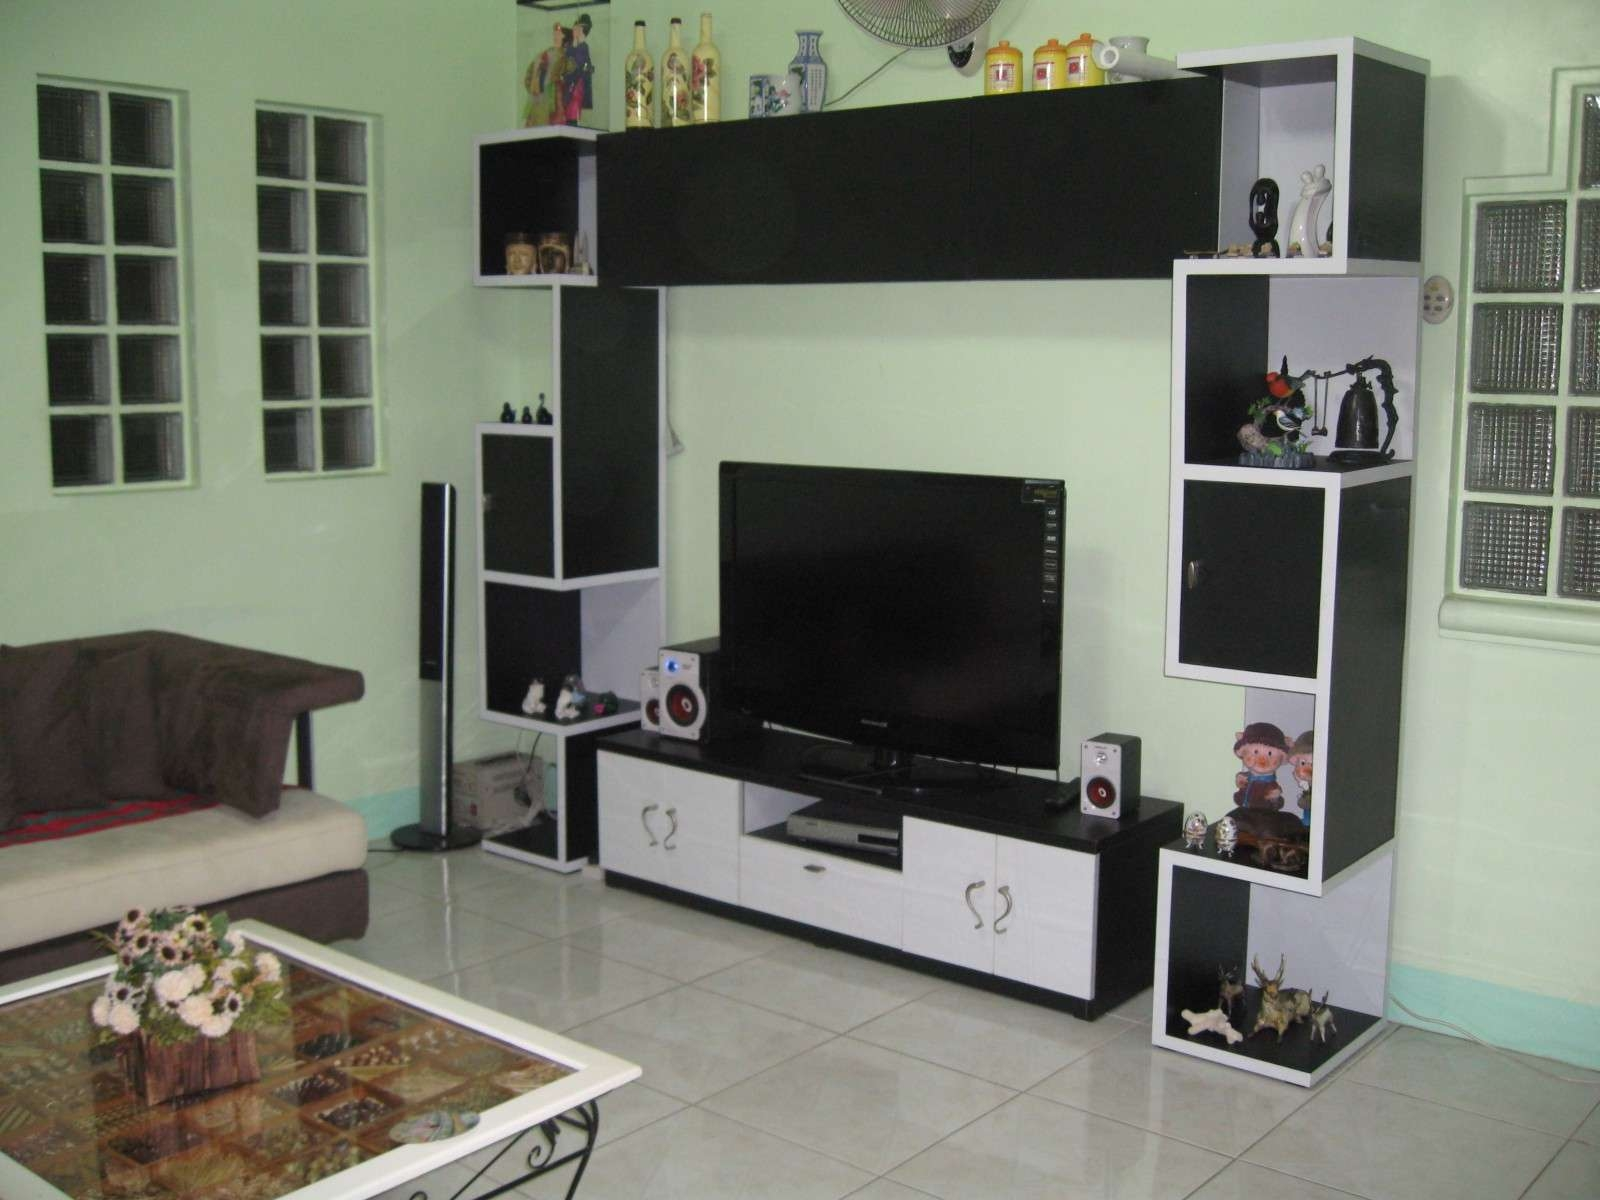 Wall Display Units Tv Cabinets 83 With Wall Display Units Tv Inside Wall Display Units And Tv Cabinets (View 8 of 20)